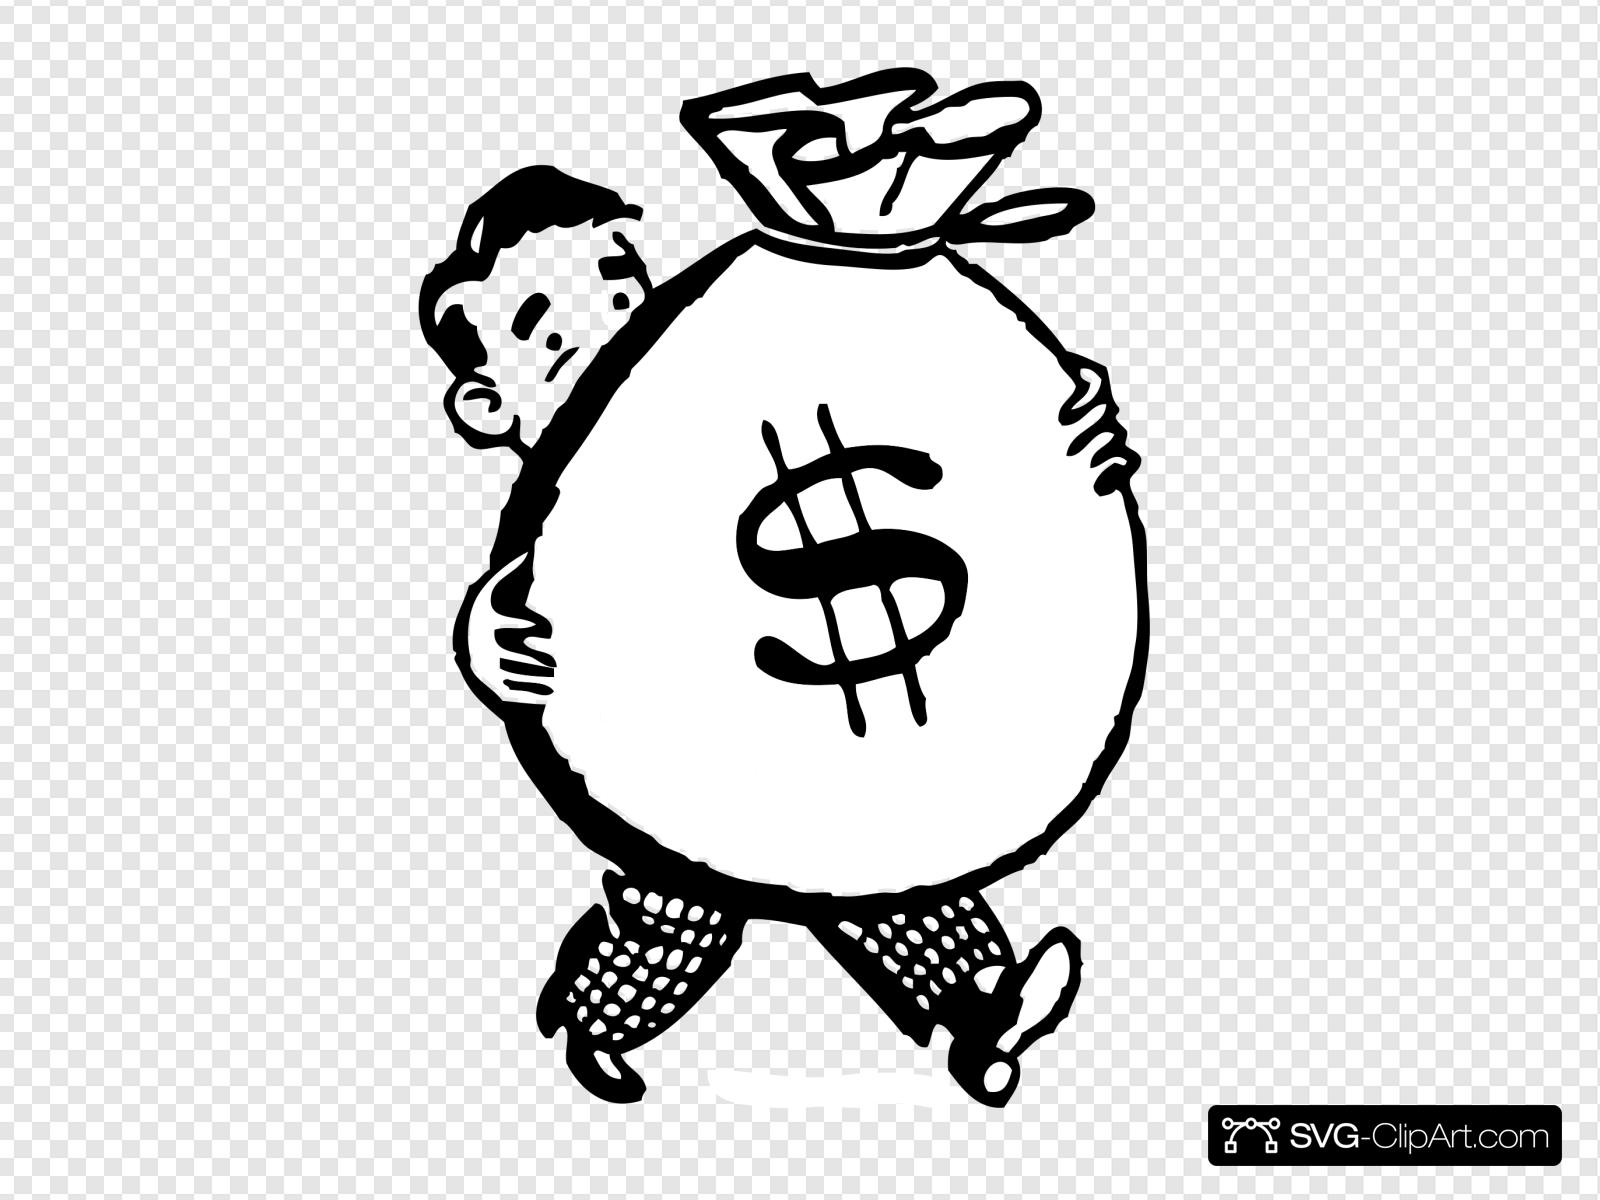 Man Carrying A Big Bag Of Money Clip art, Icon and SVG.